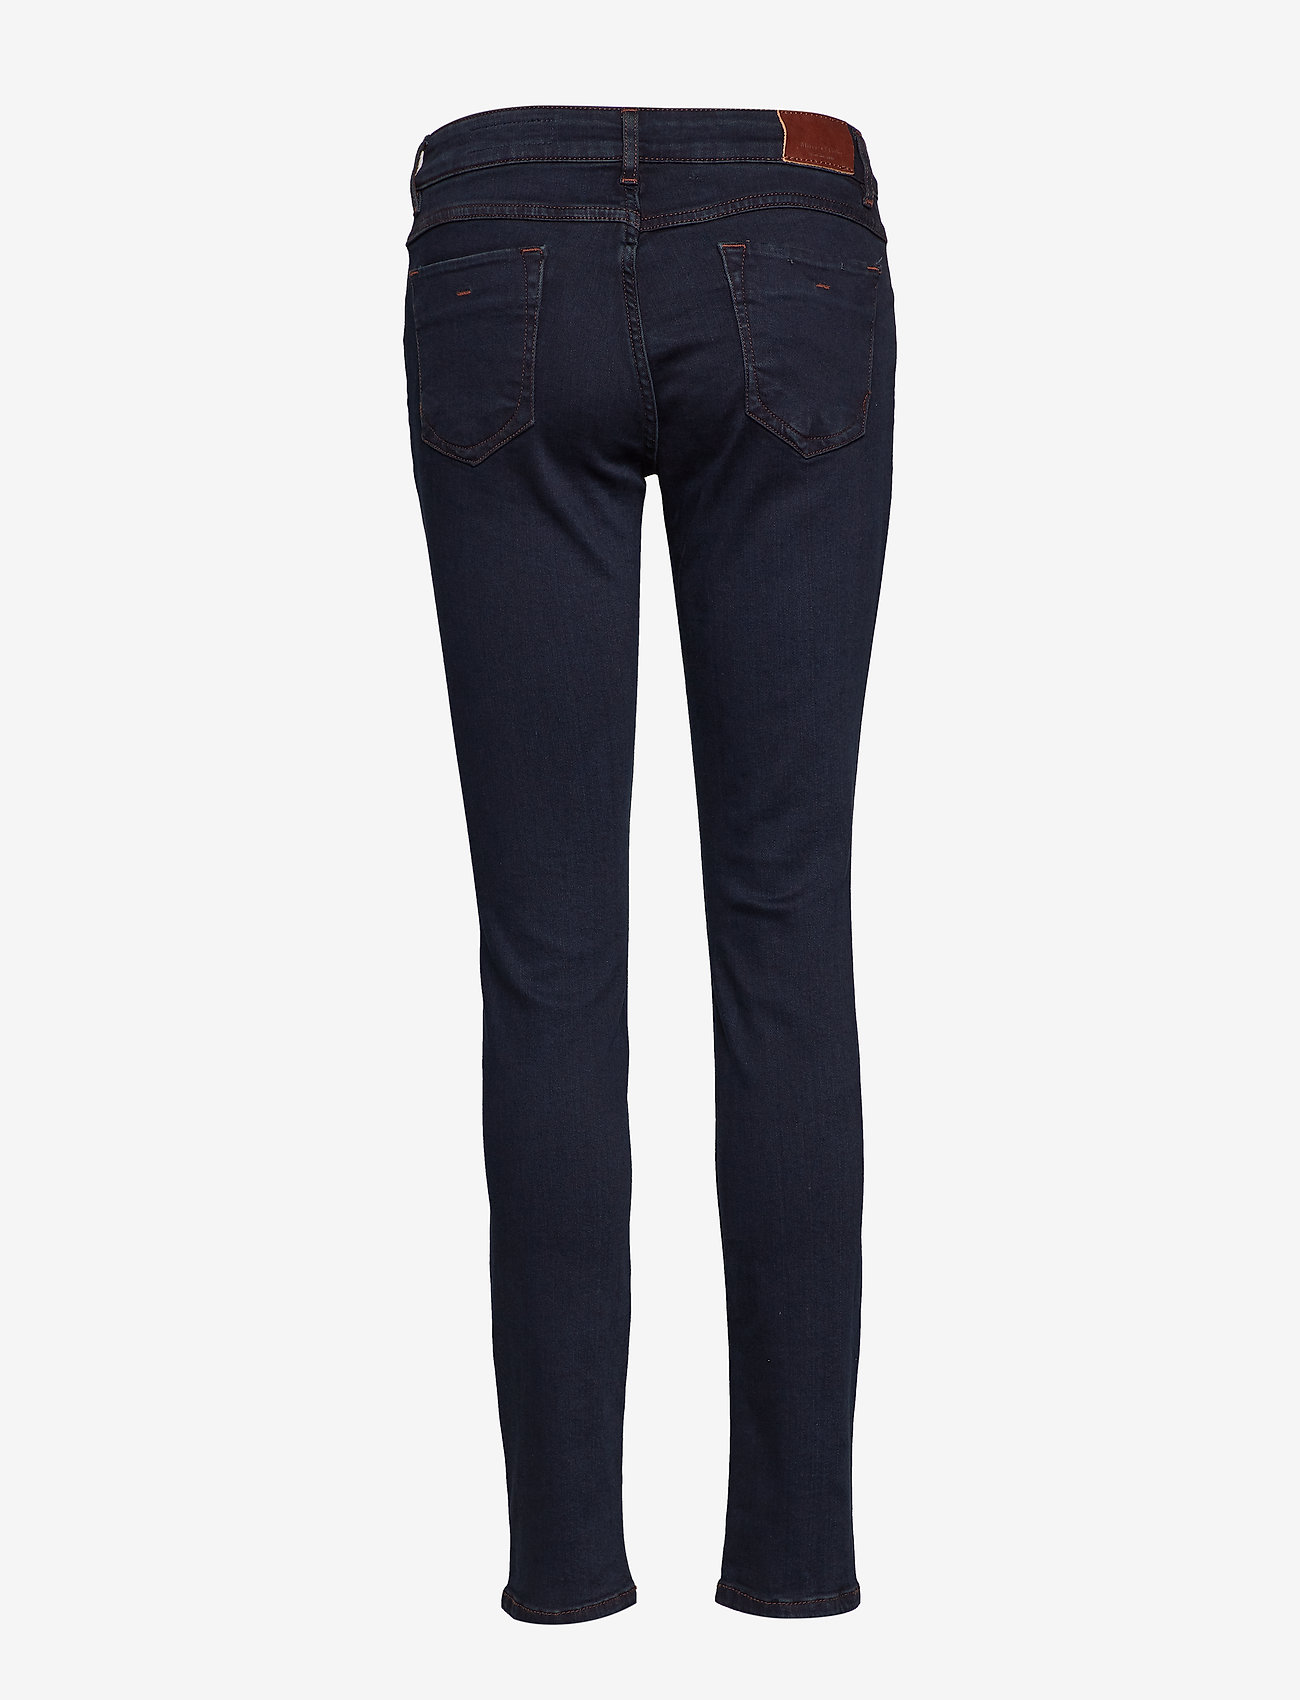 Marc O'polo Denim Trousers - Jeans Motor Scooter Wash